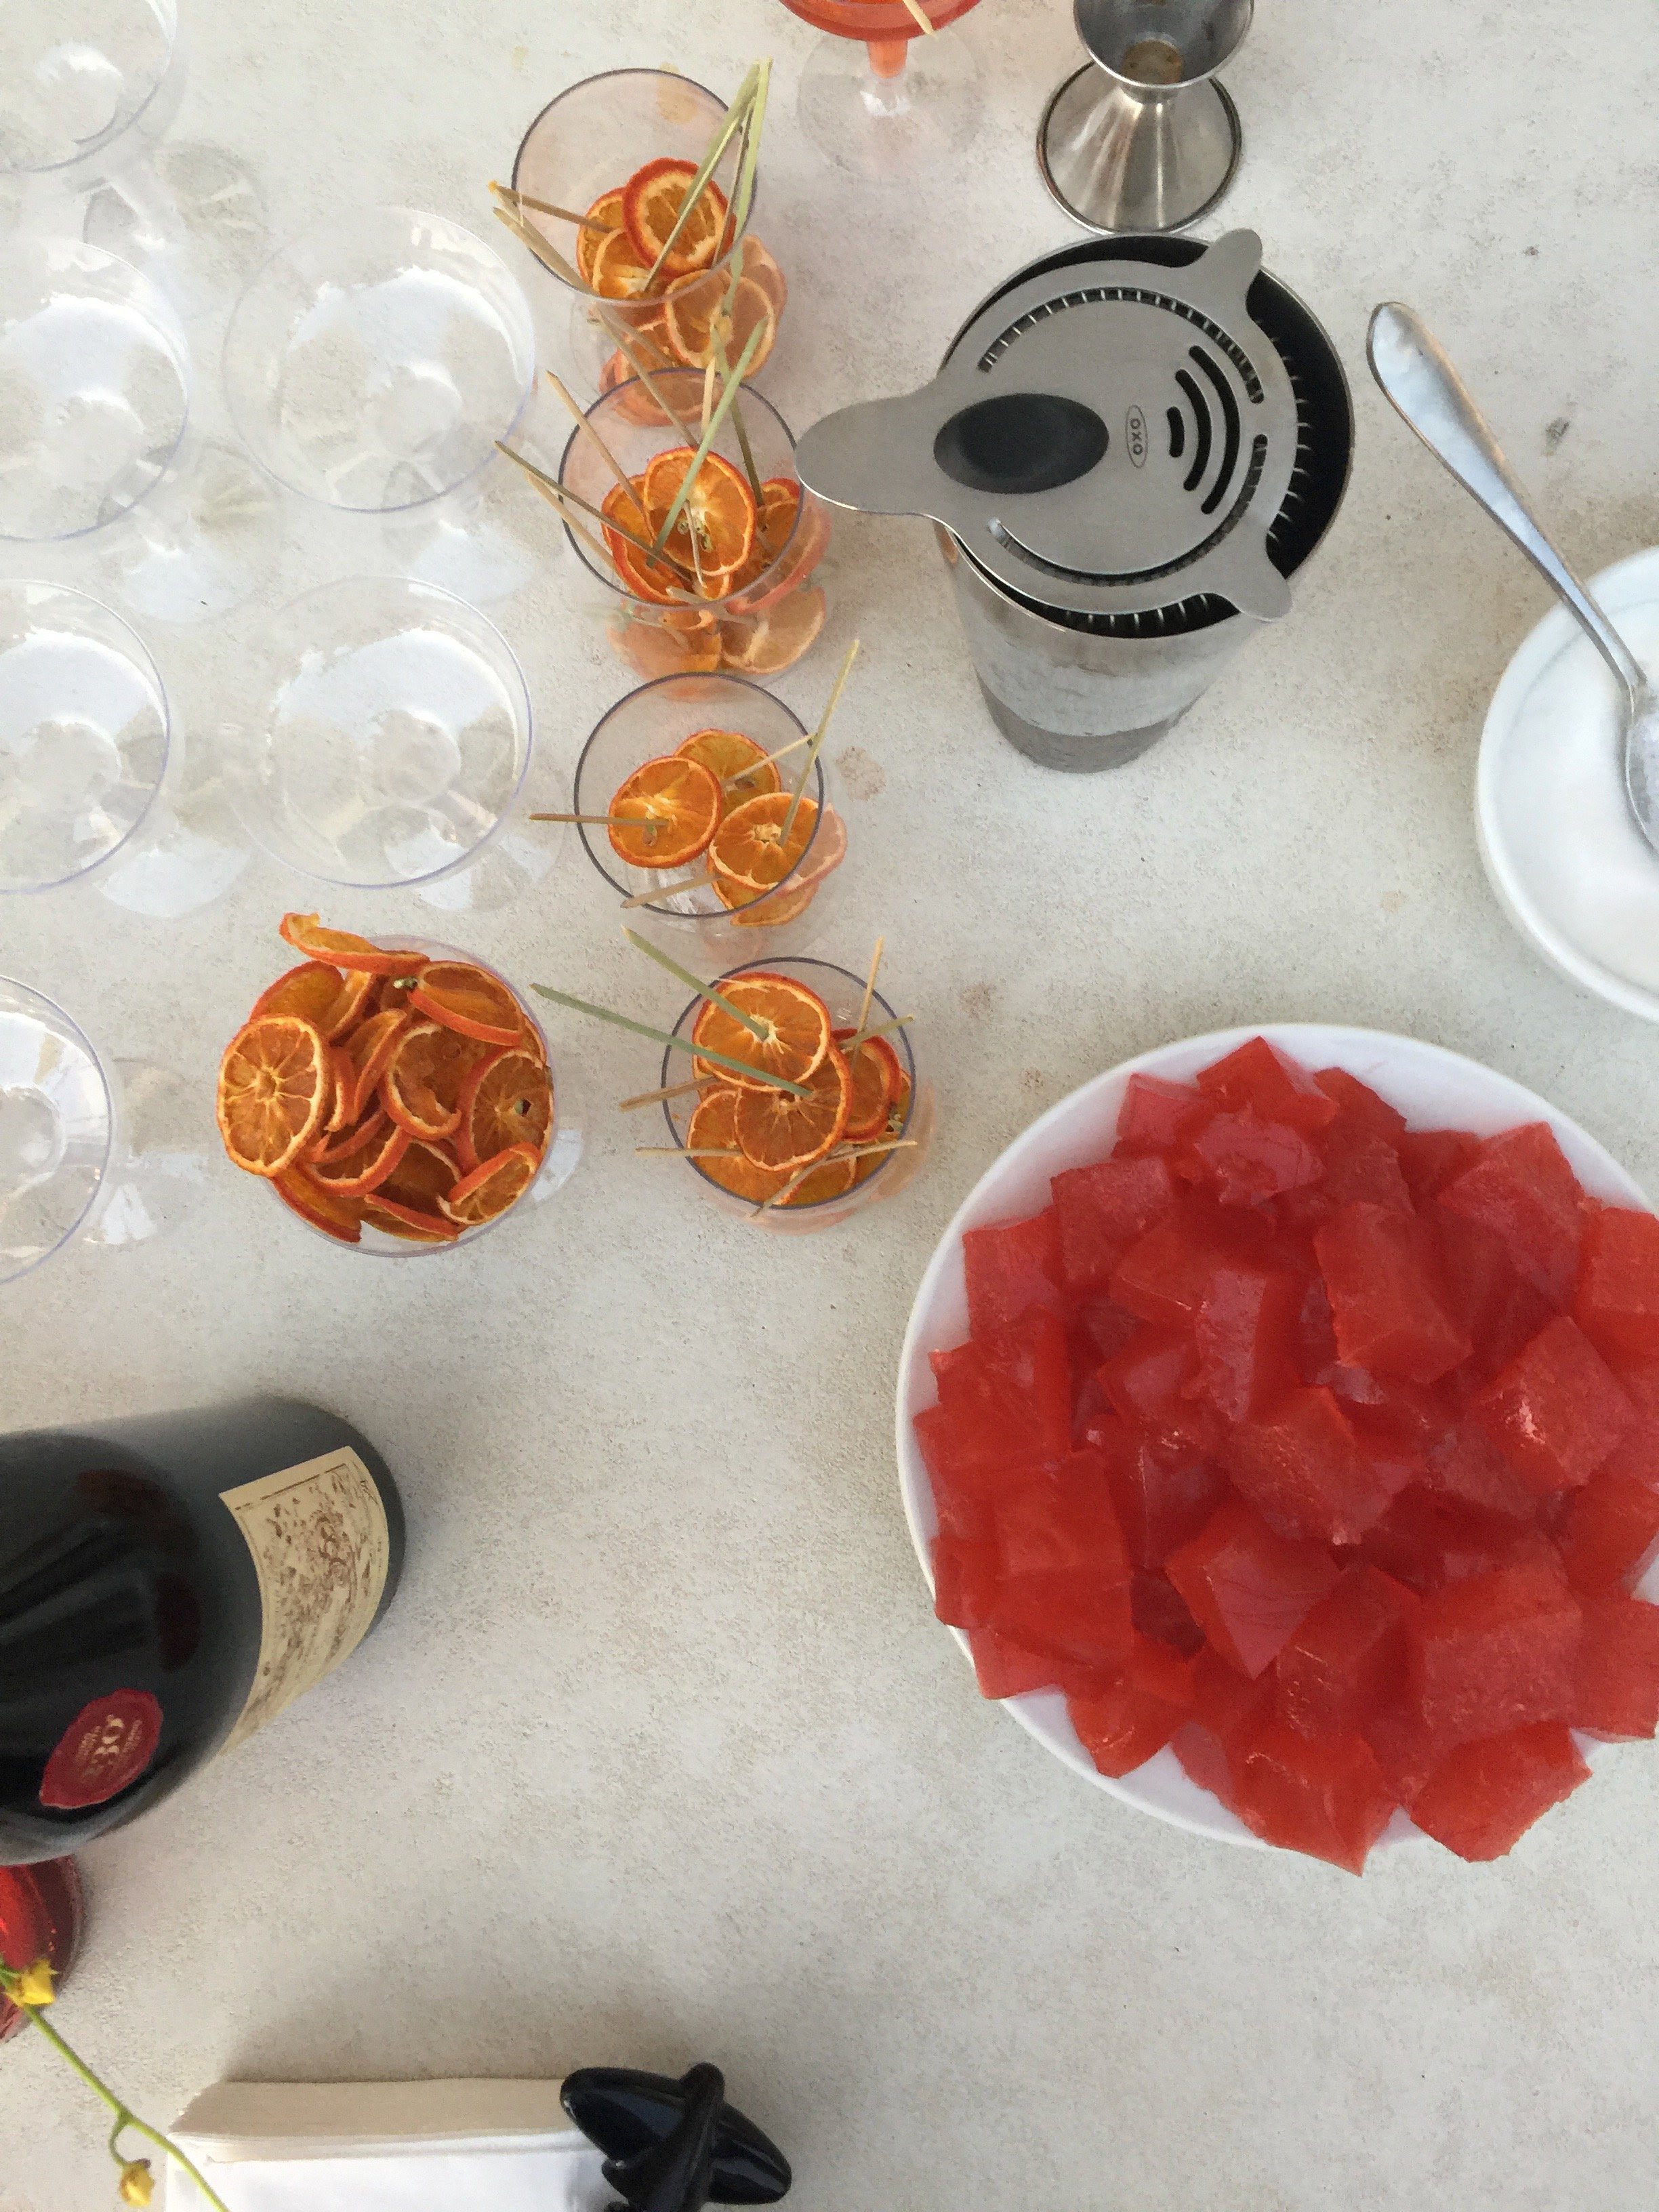 A Deconstructed Negroni